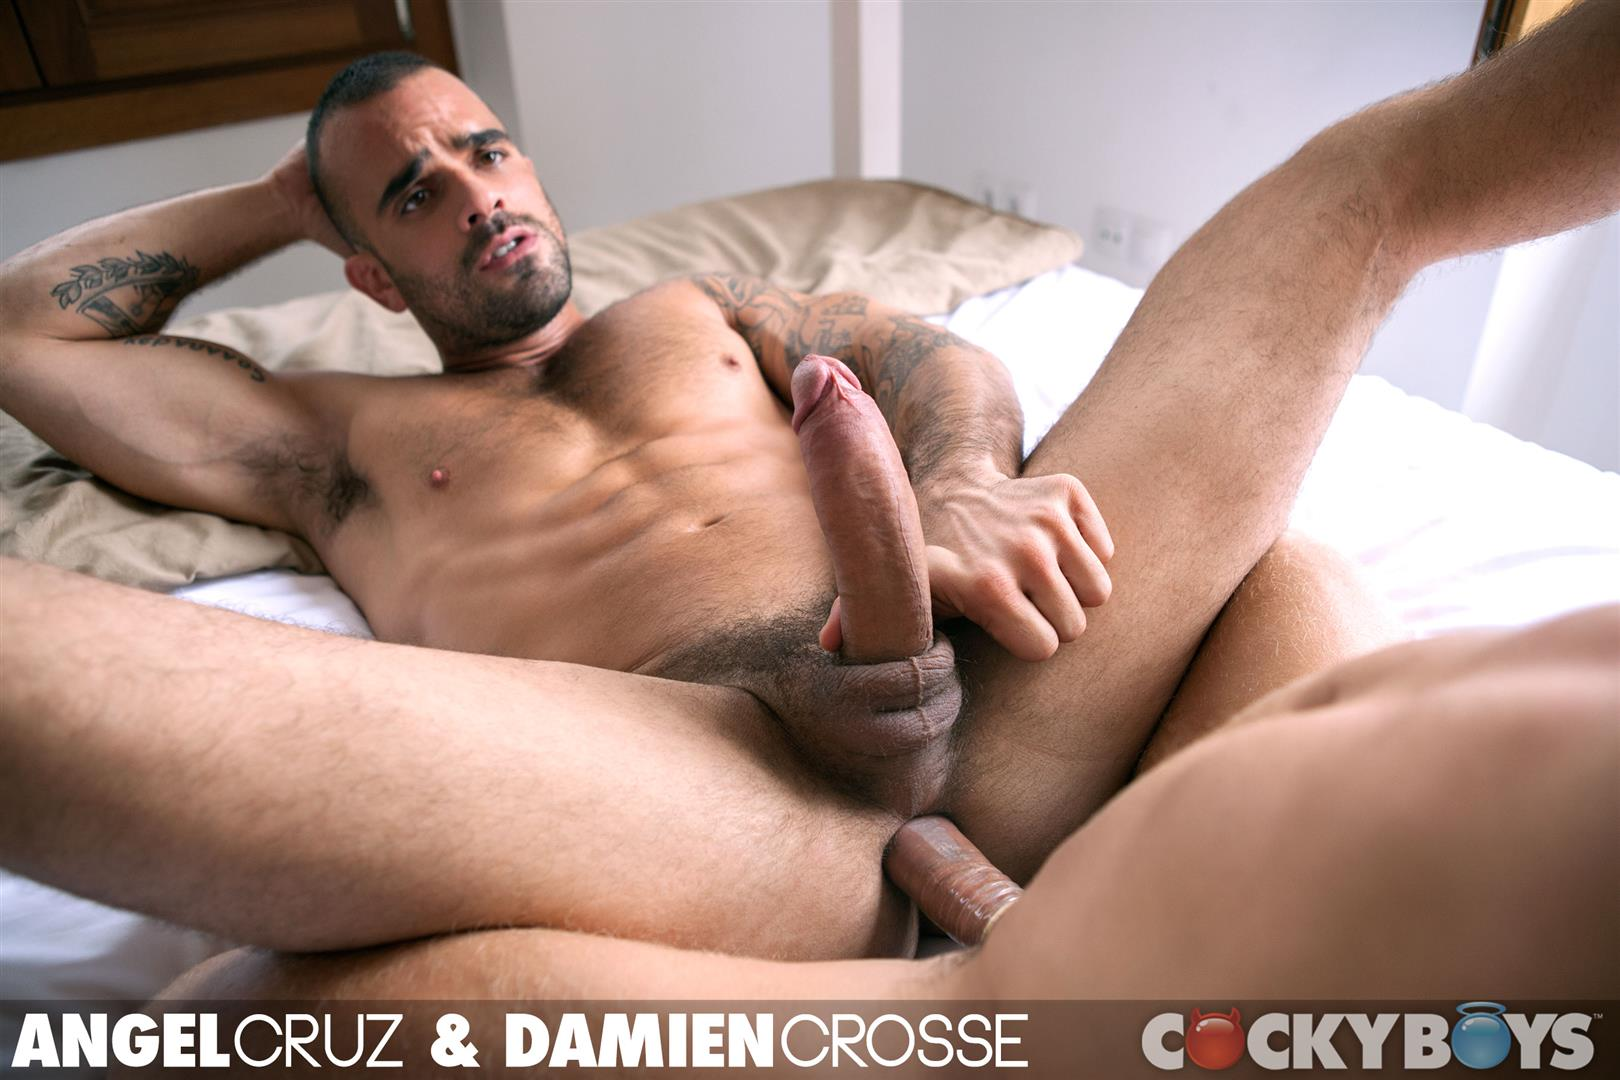 Cockyboys-Angel-Cruz-and-Damien-Cross-Big-Uncut-Cocks-Fucking-Amateur-Gay-Porn-33 Angel Cruz and Damien Cross Flip Fucking With Their Big Uncut Cocks